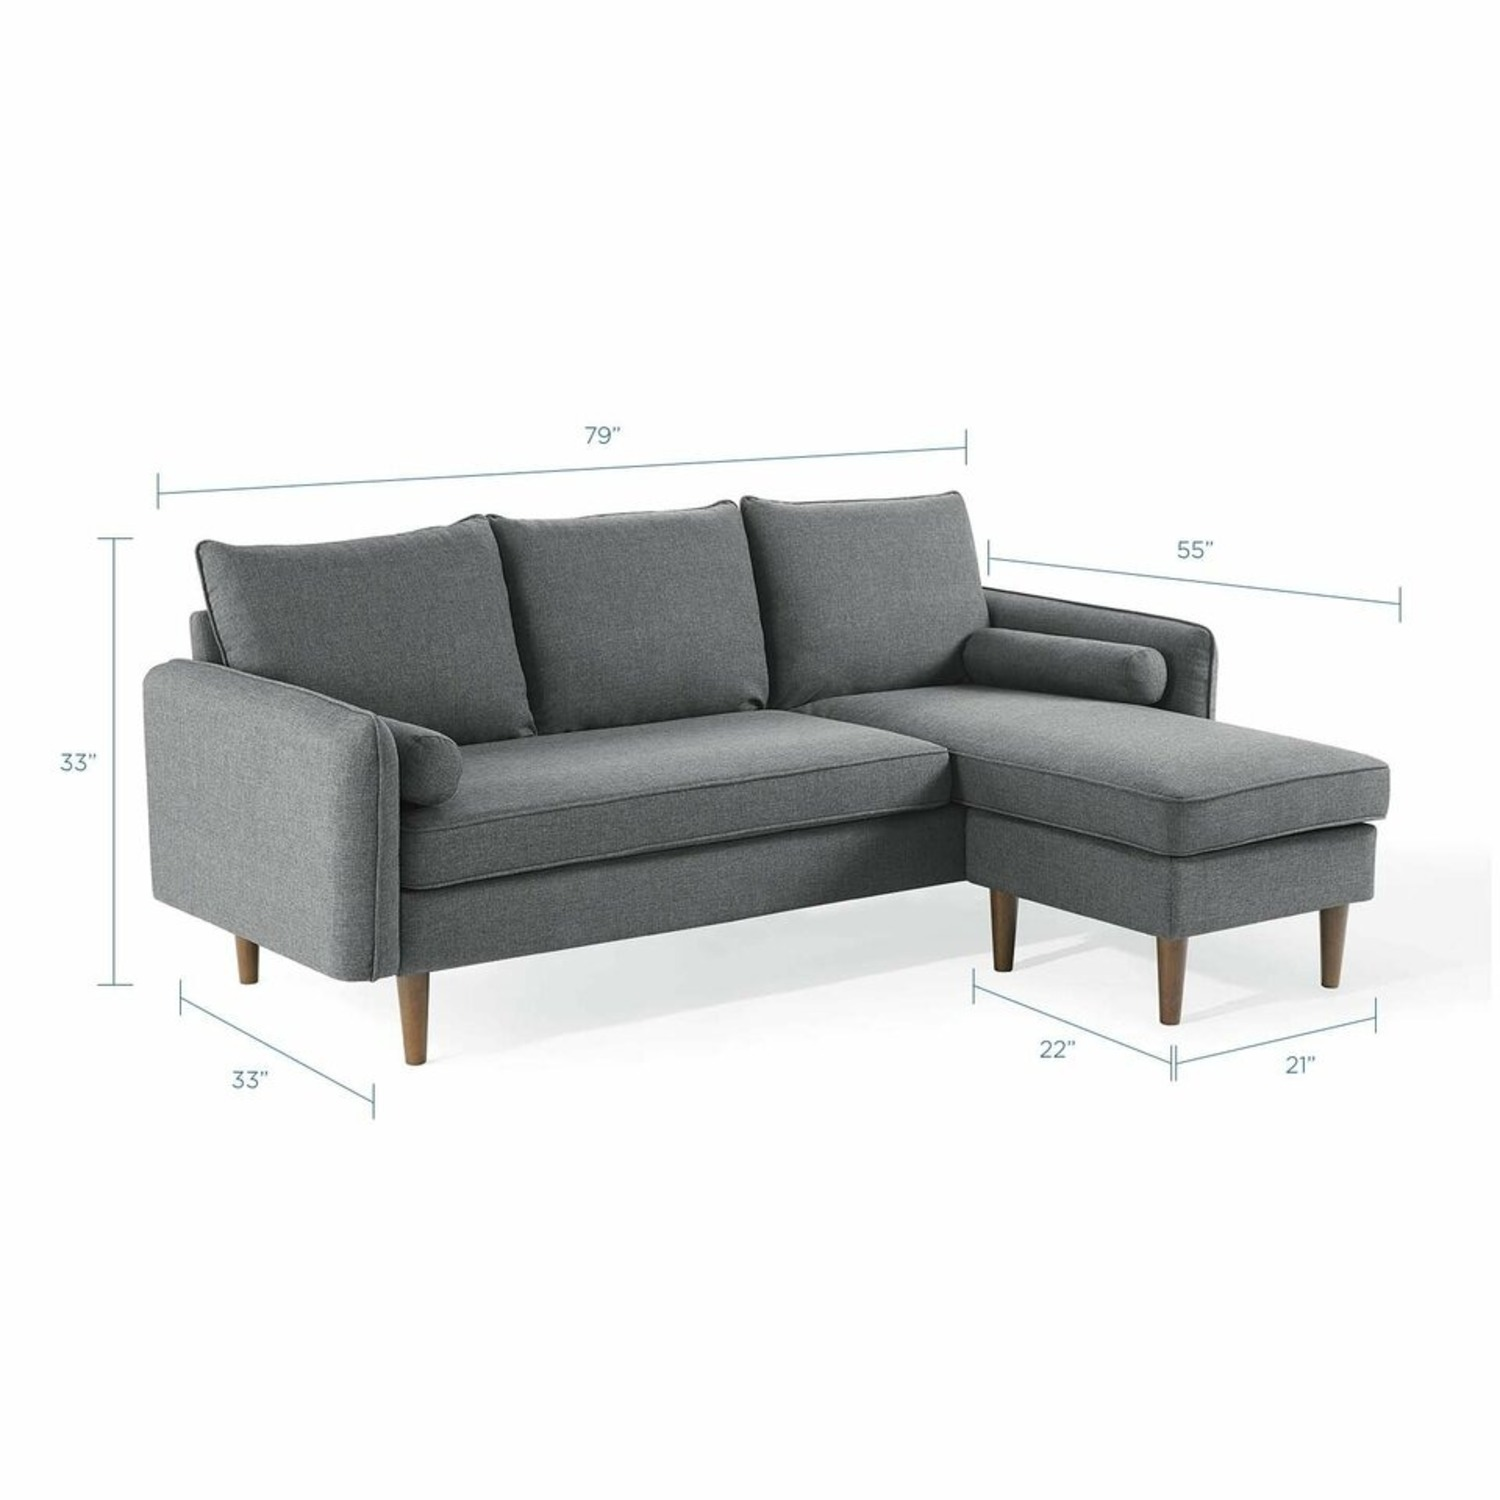 2-Piece Sectional Sofa In Gray Upholstery Finish - image-11